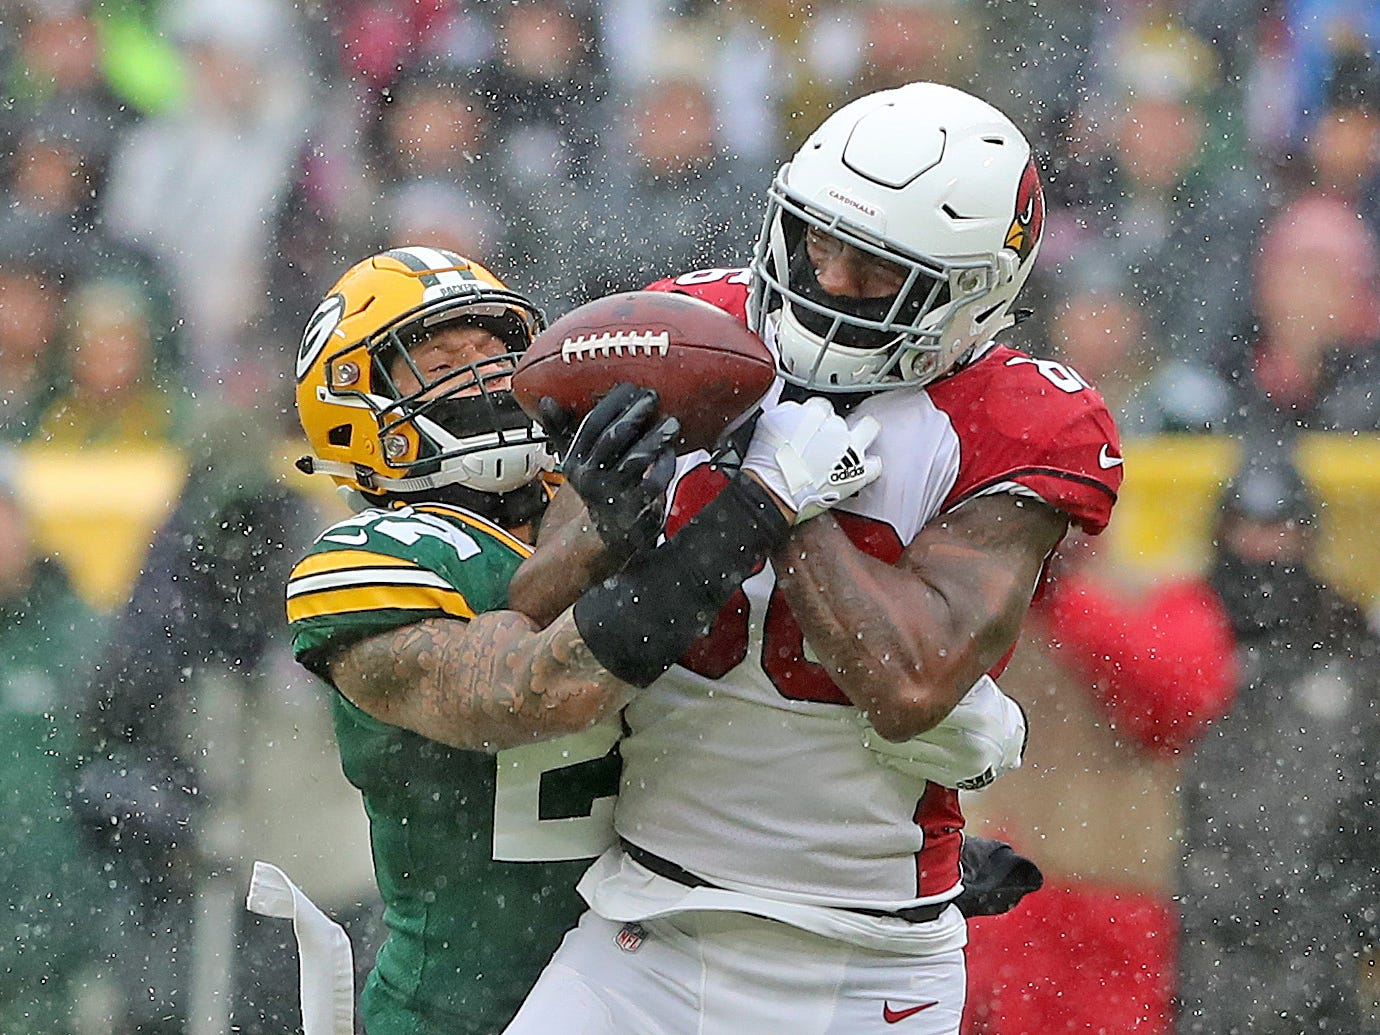 Green Bay Packers defensive back Josh Jones (27) defends a pass to tight end Ricky Seals-Jones (86)  against the Arizona Cardinals Sunday, December 2, 2018 at Lambeau Field in Green Bay, Wis. Jim Matthews/USA TODAY NETWORK-Wis